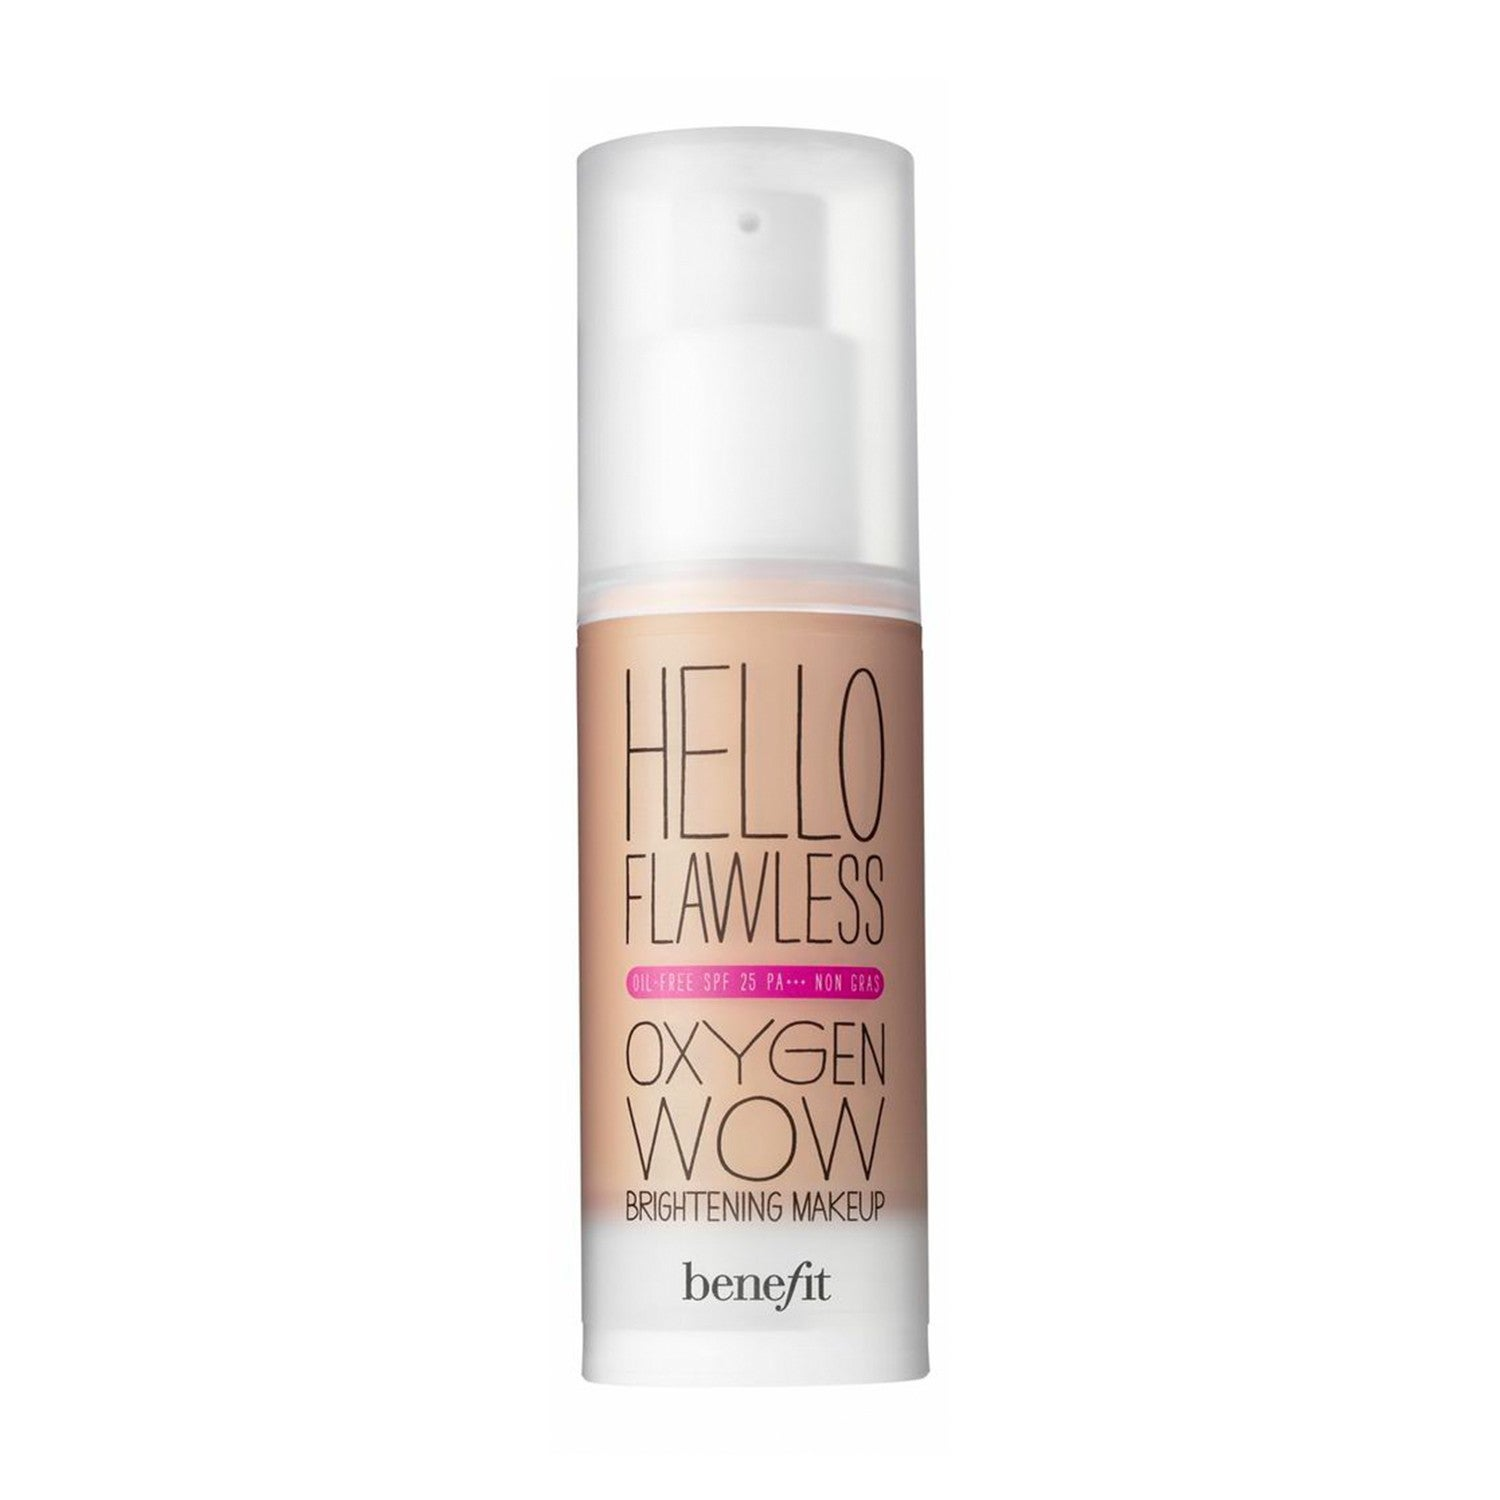 benefit hello flawless oxygen wow spf 25 liquid foundation. Black Bedroom Furniture Sets. Home Design Ideas